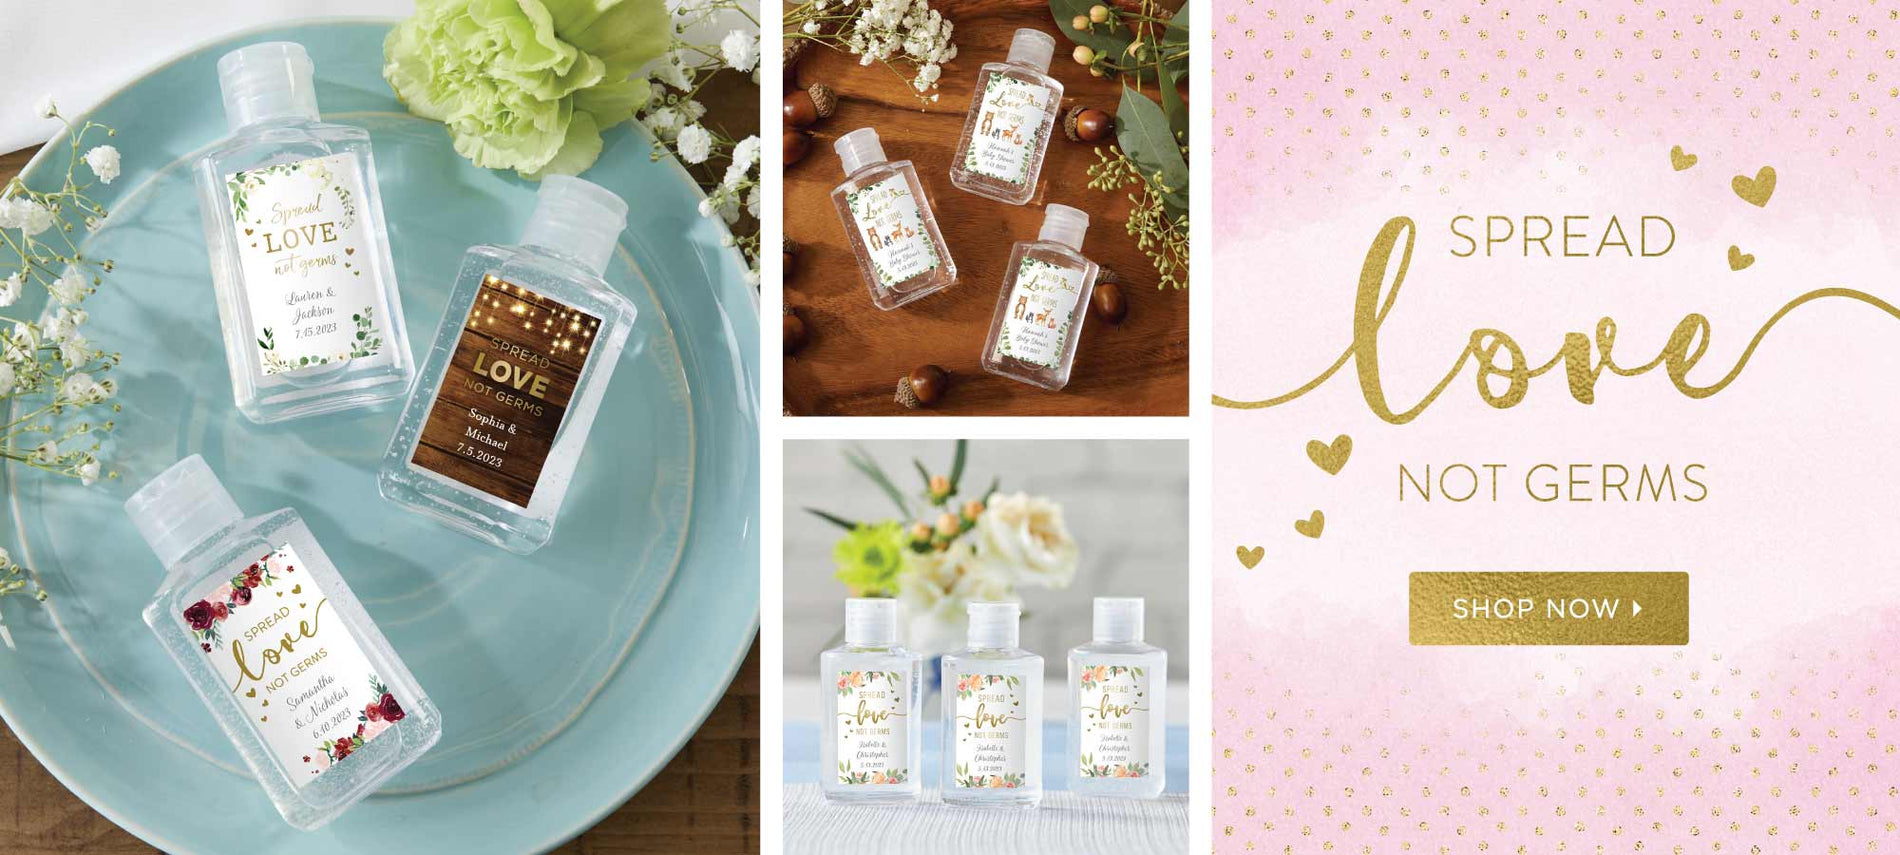 Hand Sanitizers for Baby Showers and Birthday's! | Shop Corner Stork Baby Gifts for gifts, favors and more for all your special occasions.